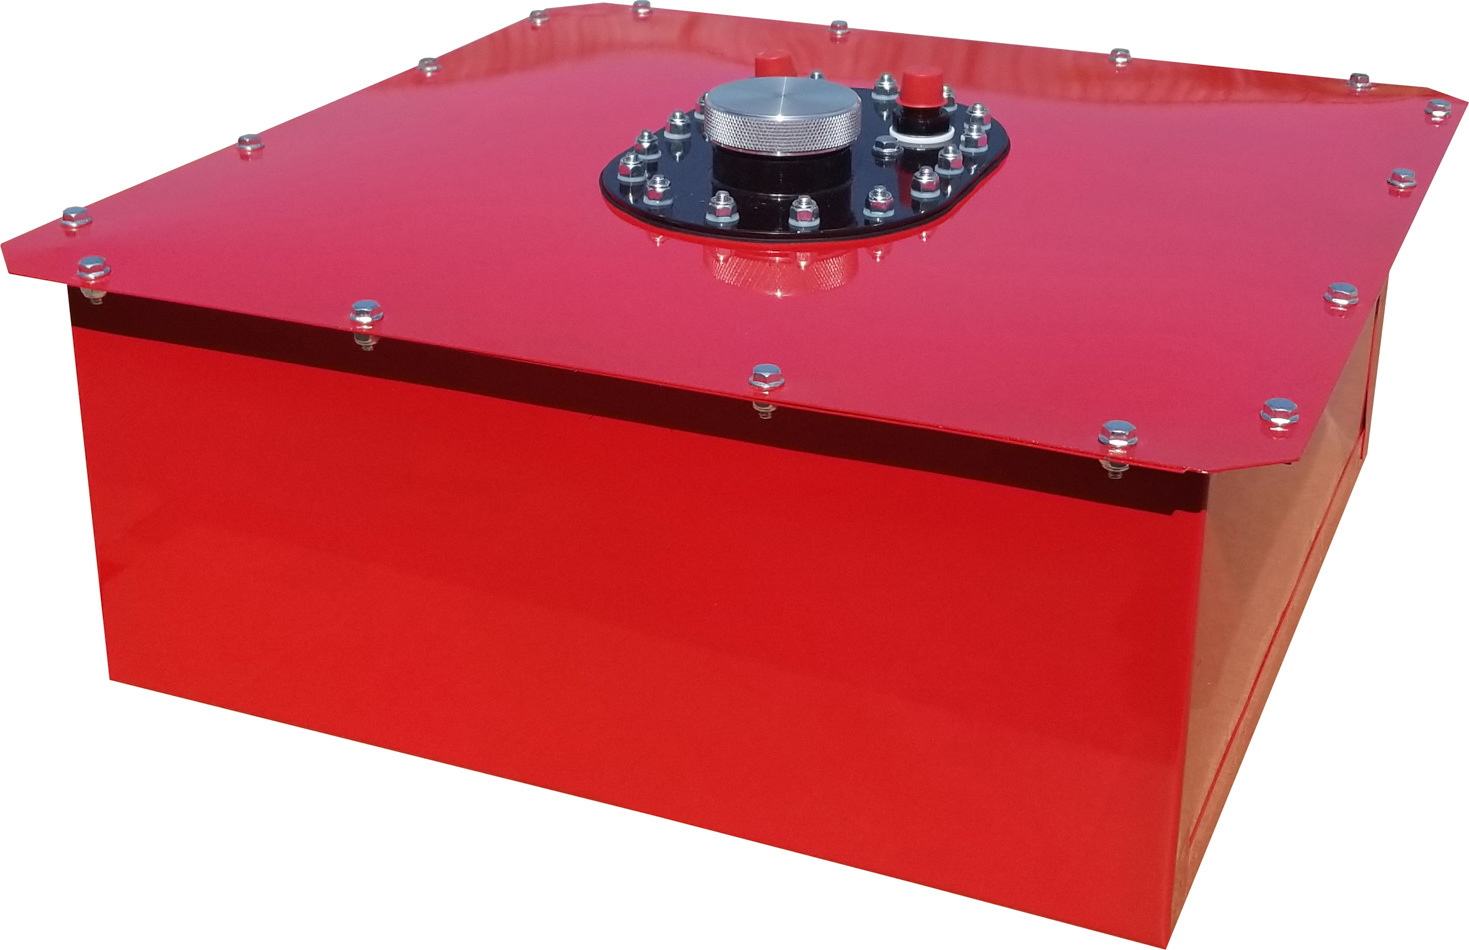 RCI 1082C Fuel Cell and Can, Circle Track, 8 gal, 19 x 19 x 8 in Tall, 8 AN Male Outlet, 8 AN Male Vent, Steel / Plastic, Red, Each